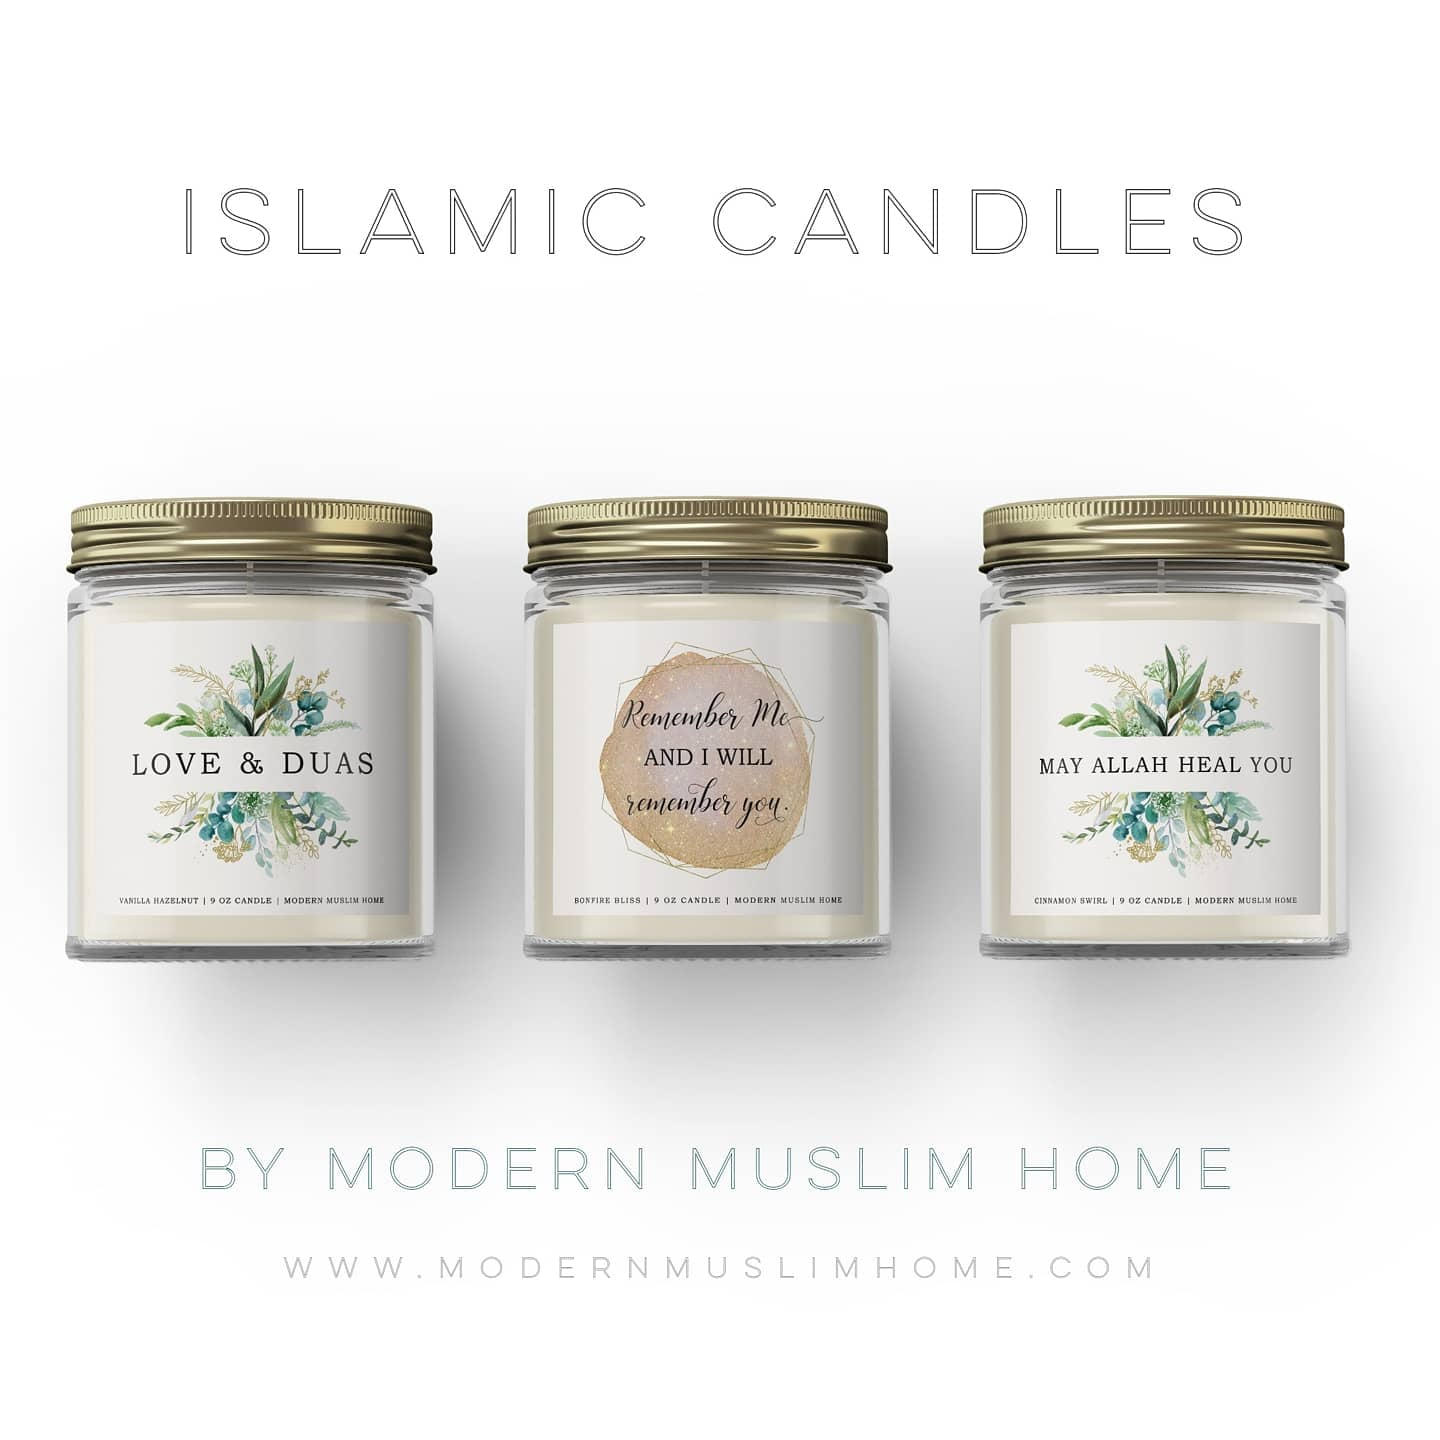 Islamic Candles by Modern Muslim Home